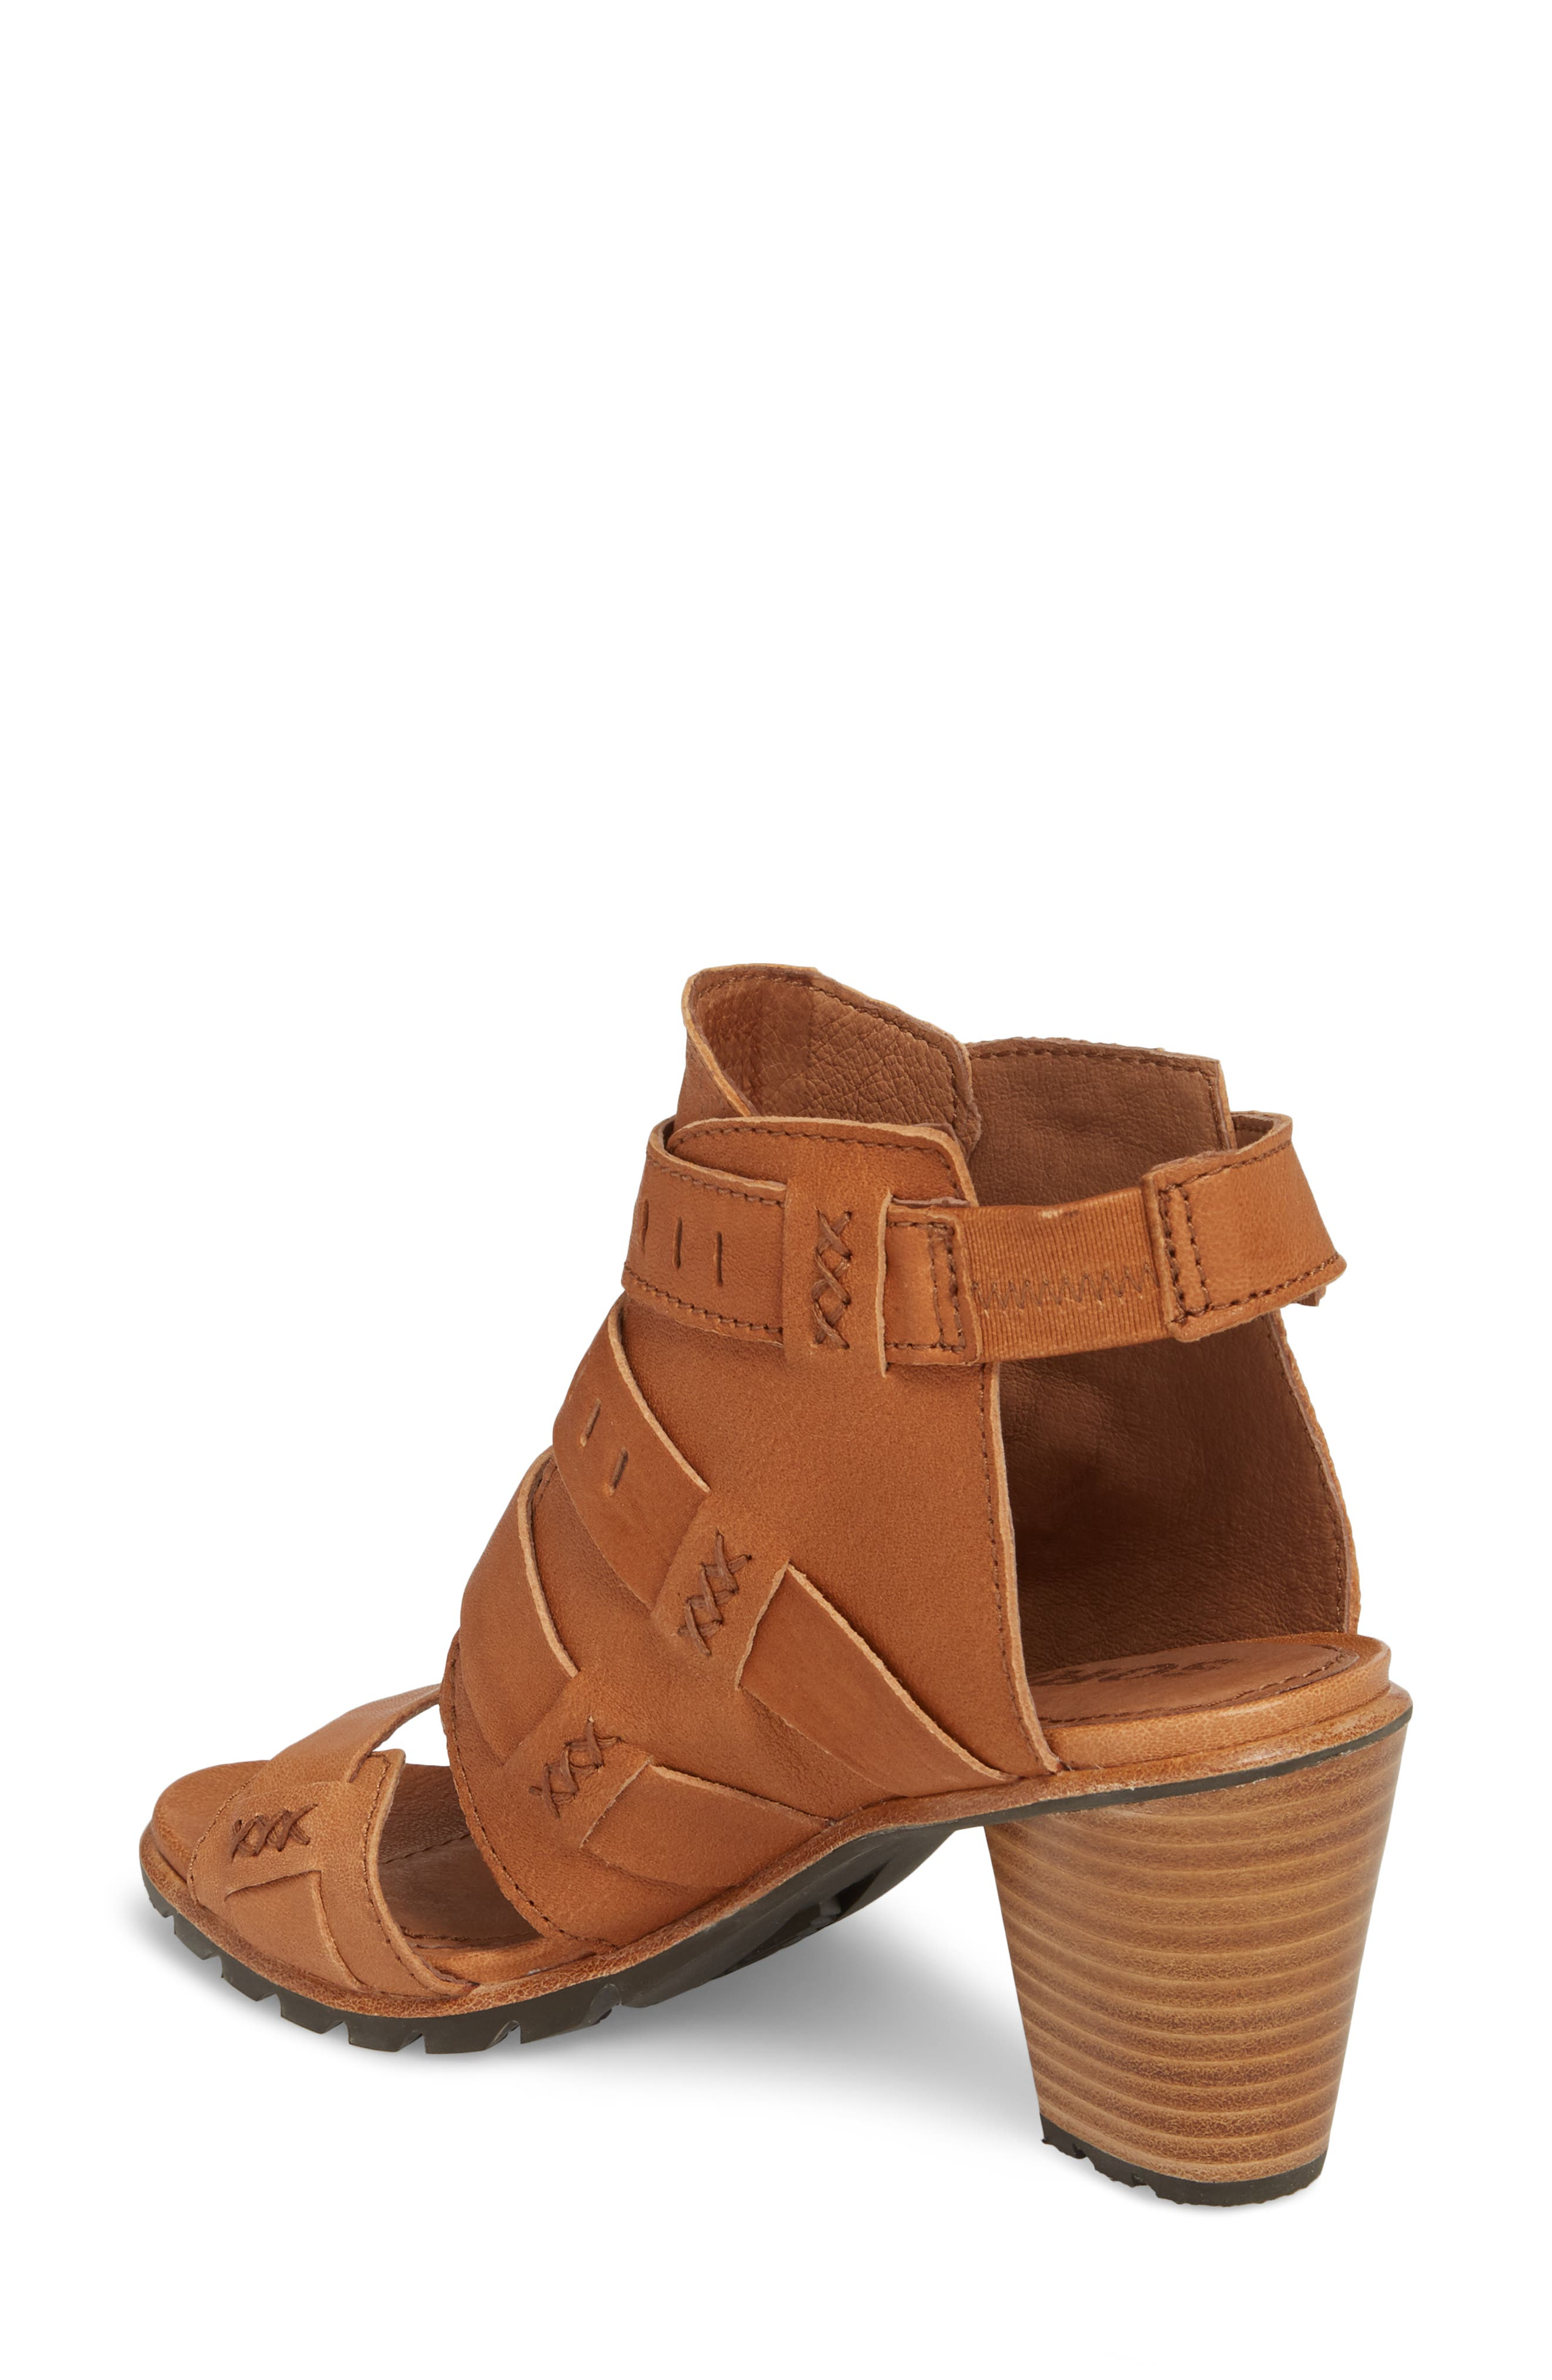 Nadia Buckle Bootie,                             Alternate thumbnail 2, color,                             Camel Brown